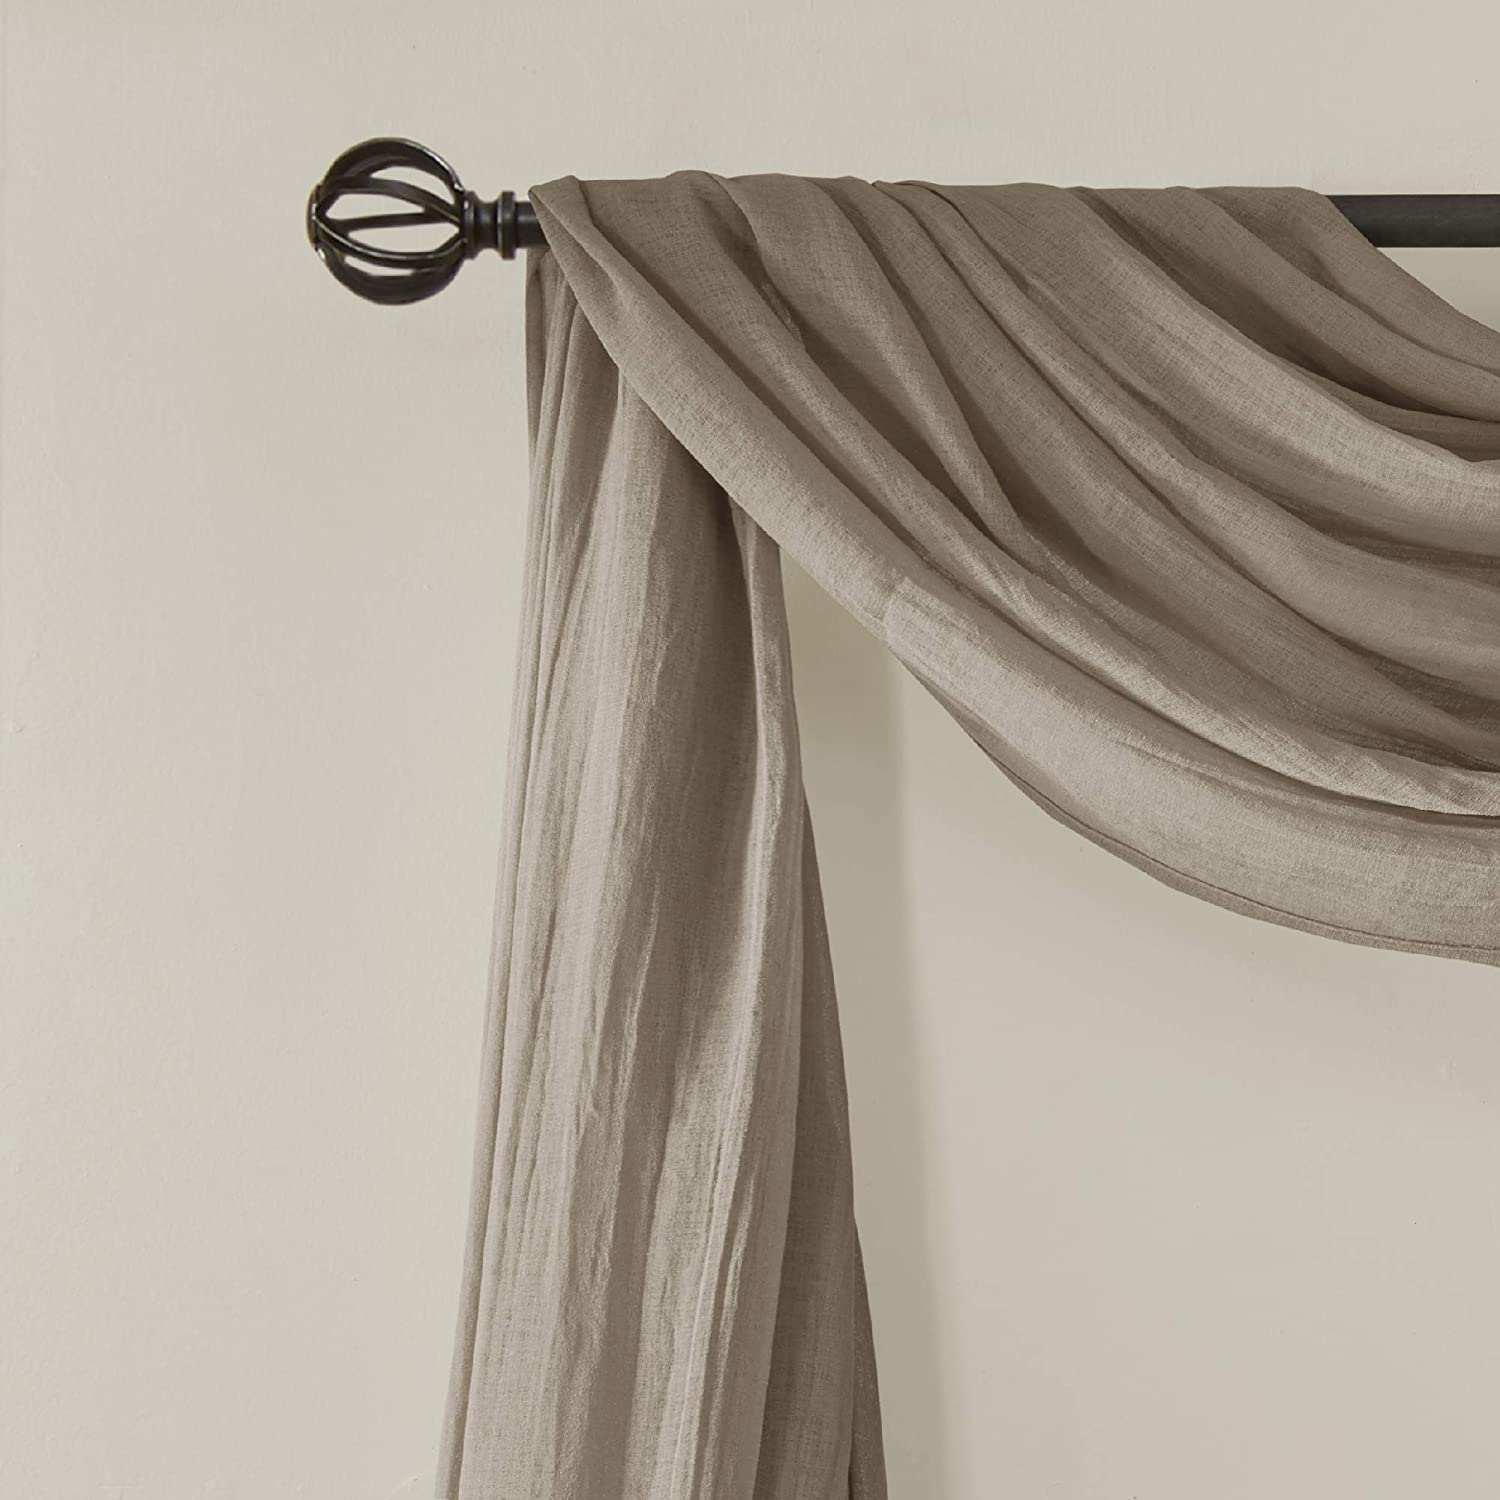 "Madison Park Harper Sheer Bedroom, Modern Contemporary Window Curtain for Kitchen, Solid Fabric Panels, 42"" x 216"", Taupe: Home & Kitchen"